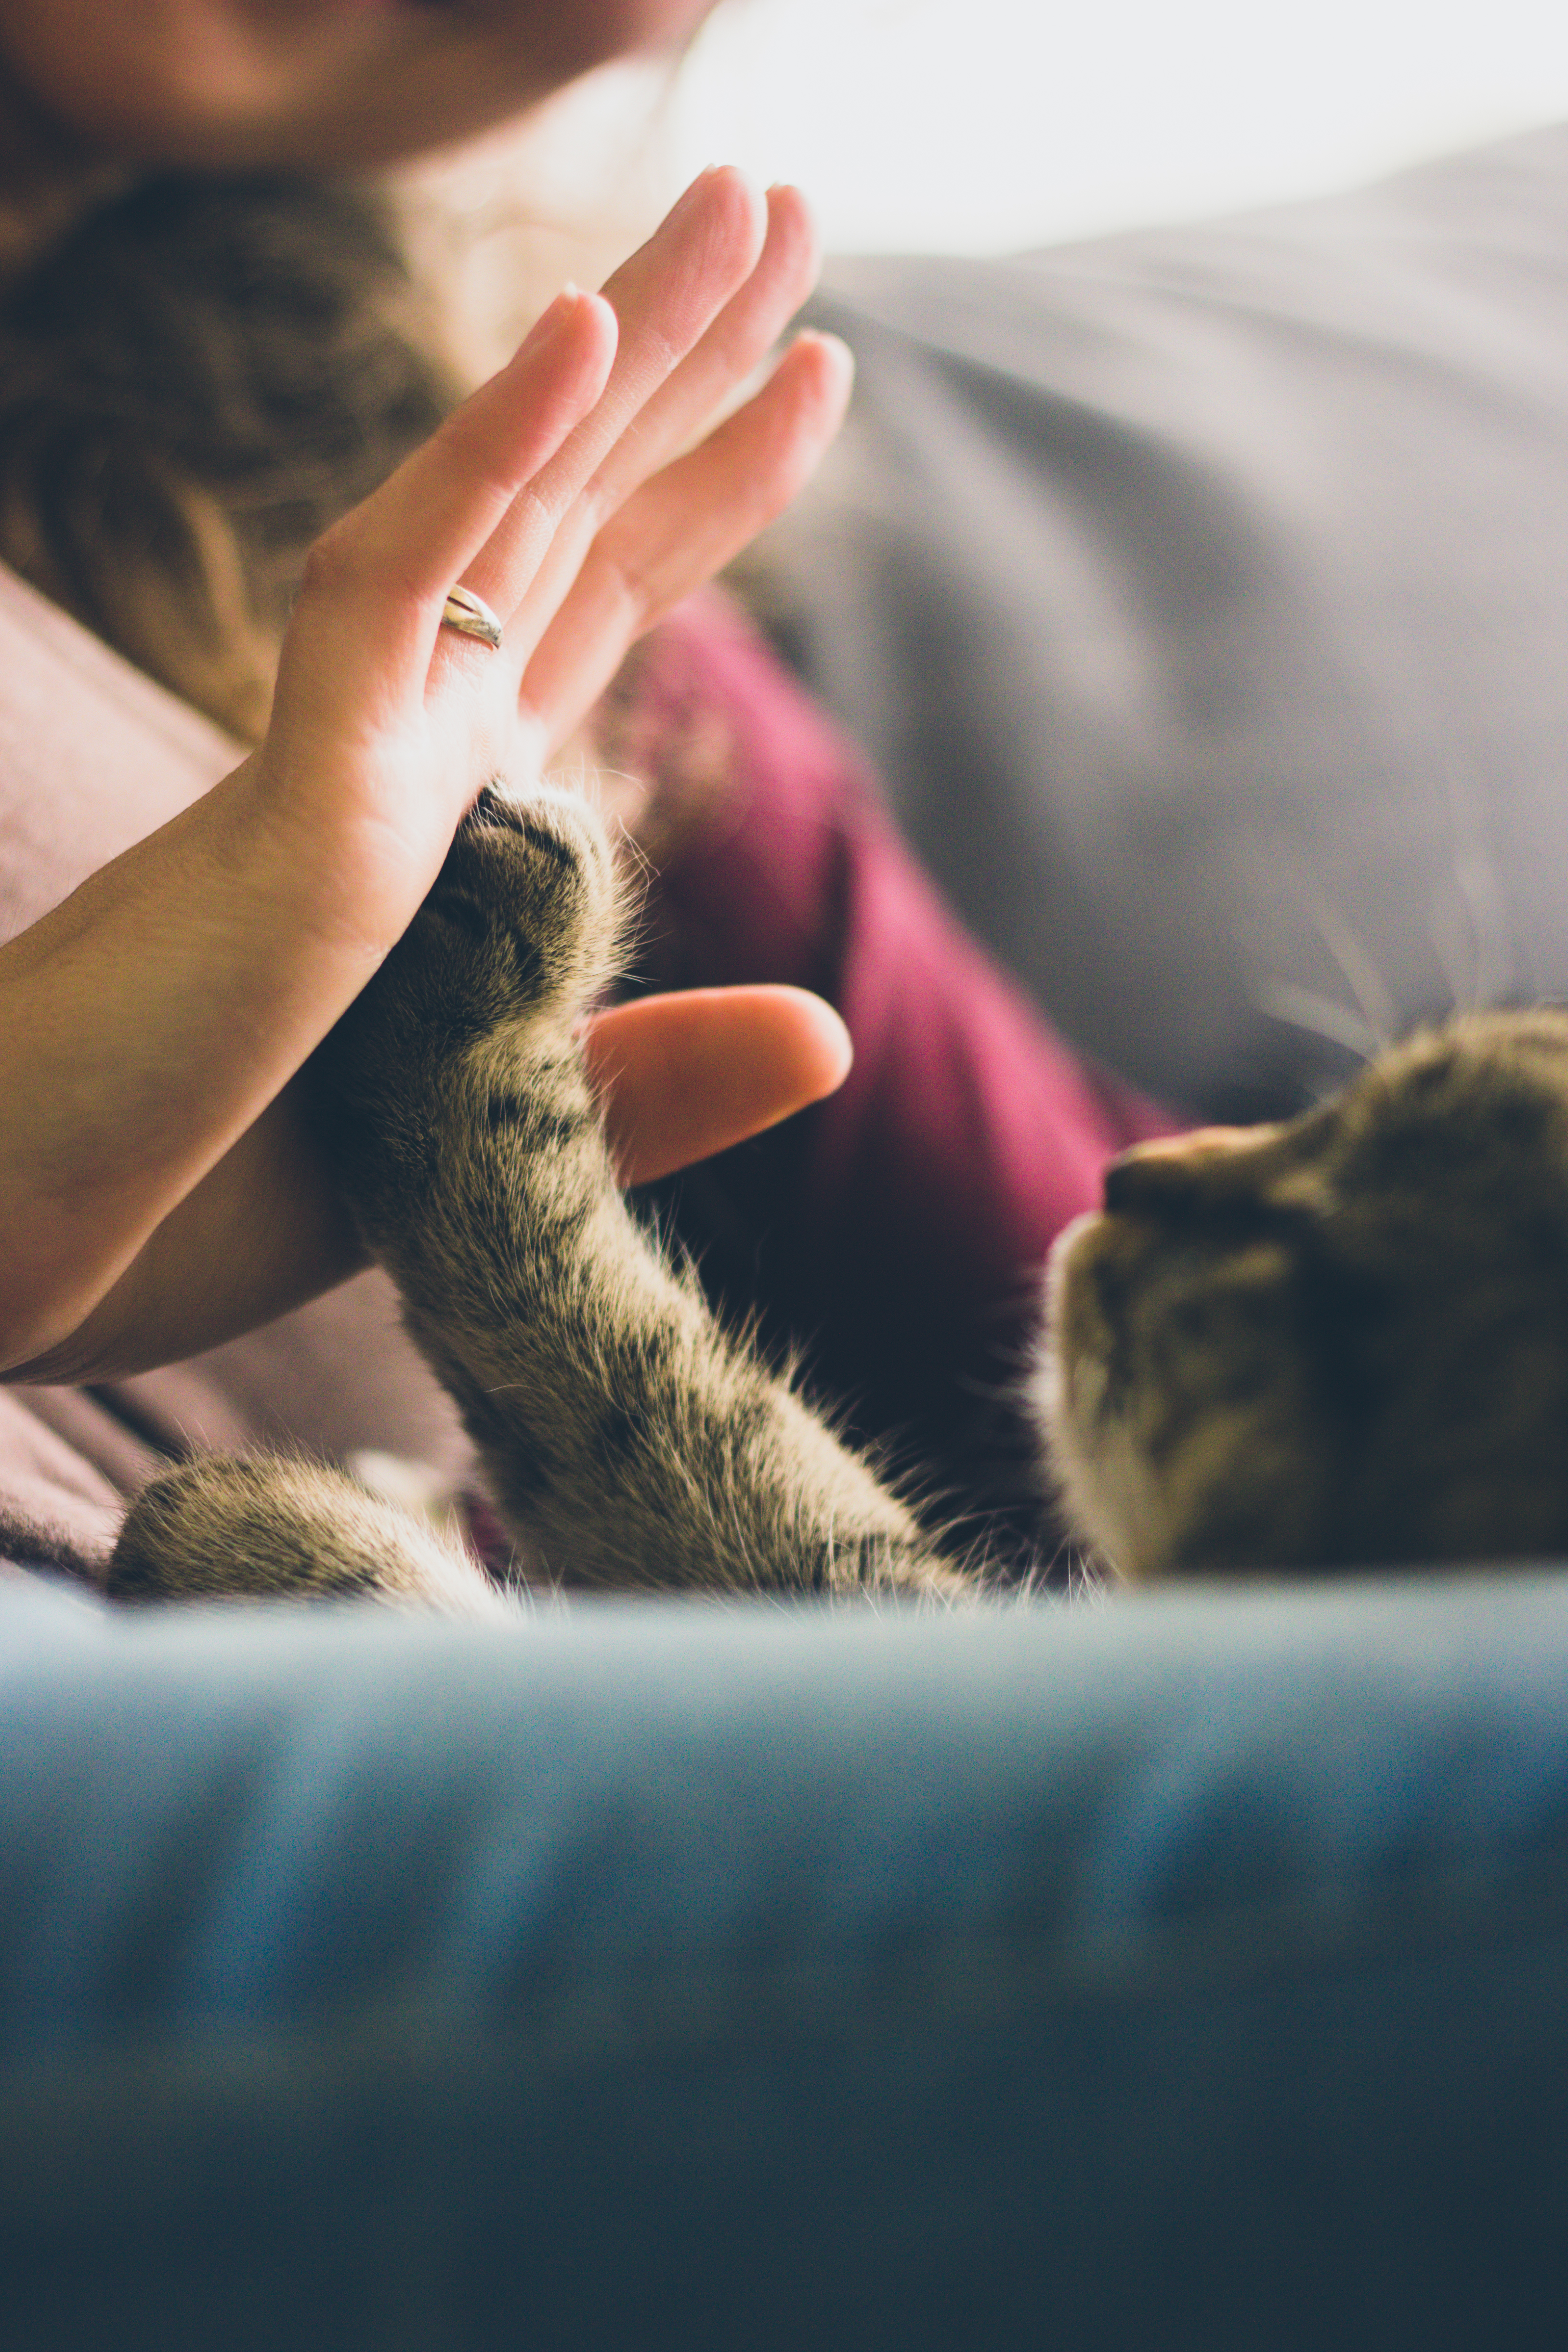 High Five with Cat, Animal, Cat, Feline, Fingers, HQ Photo